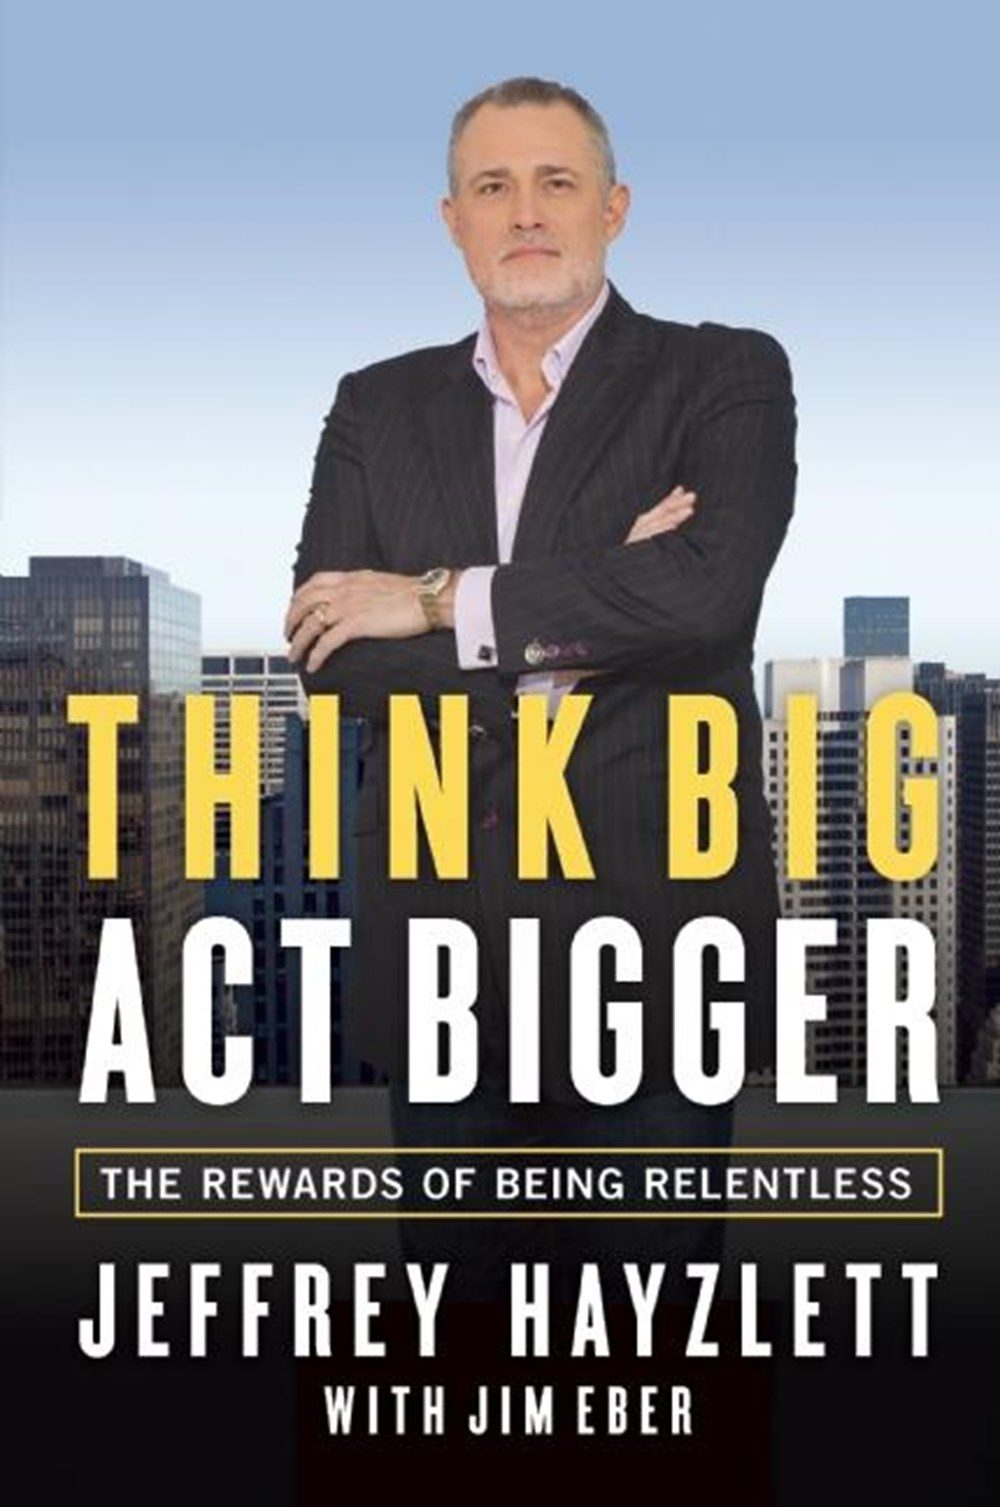 Think Big, Act Bigger The Rewards of Being Relentless